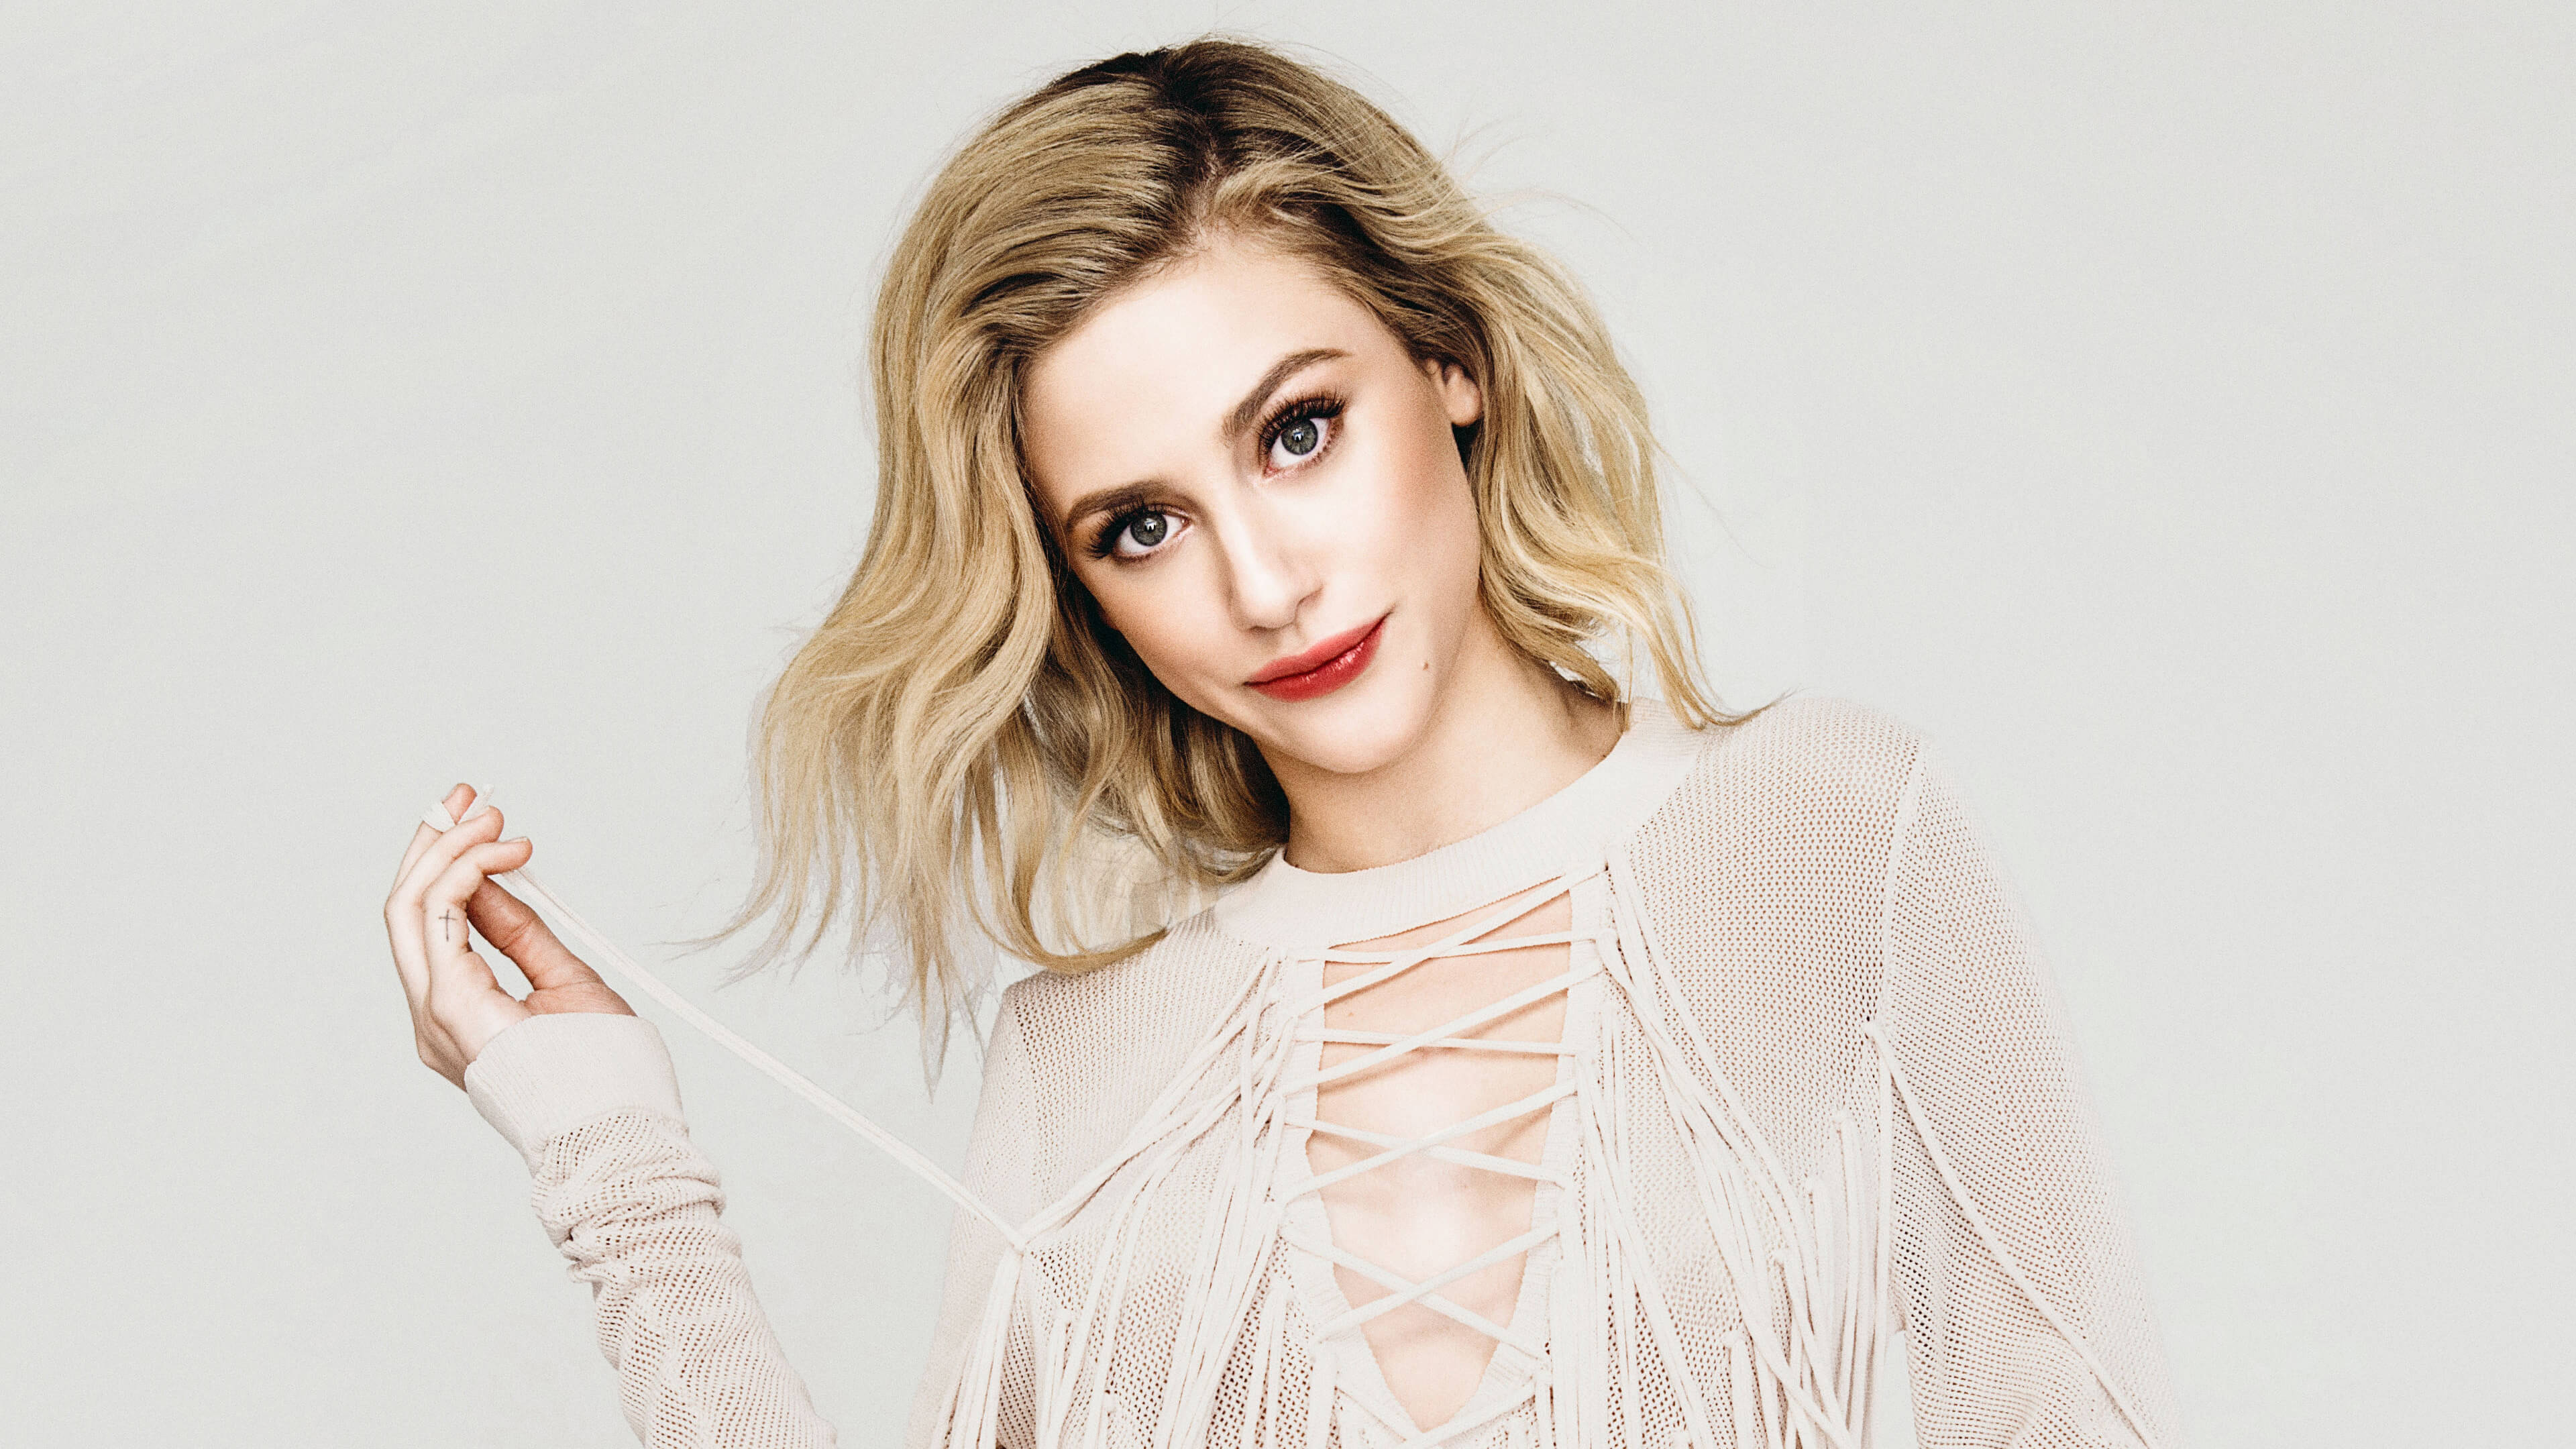 lili reinhart makeup hd wallpaper 63296